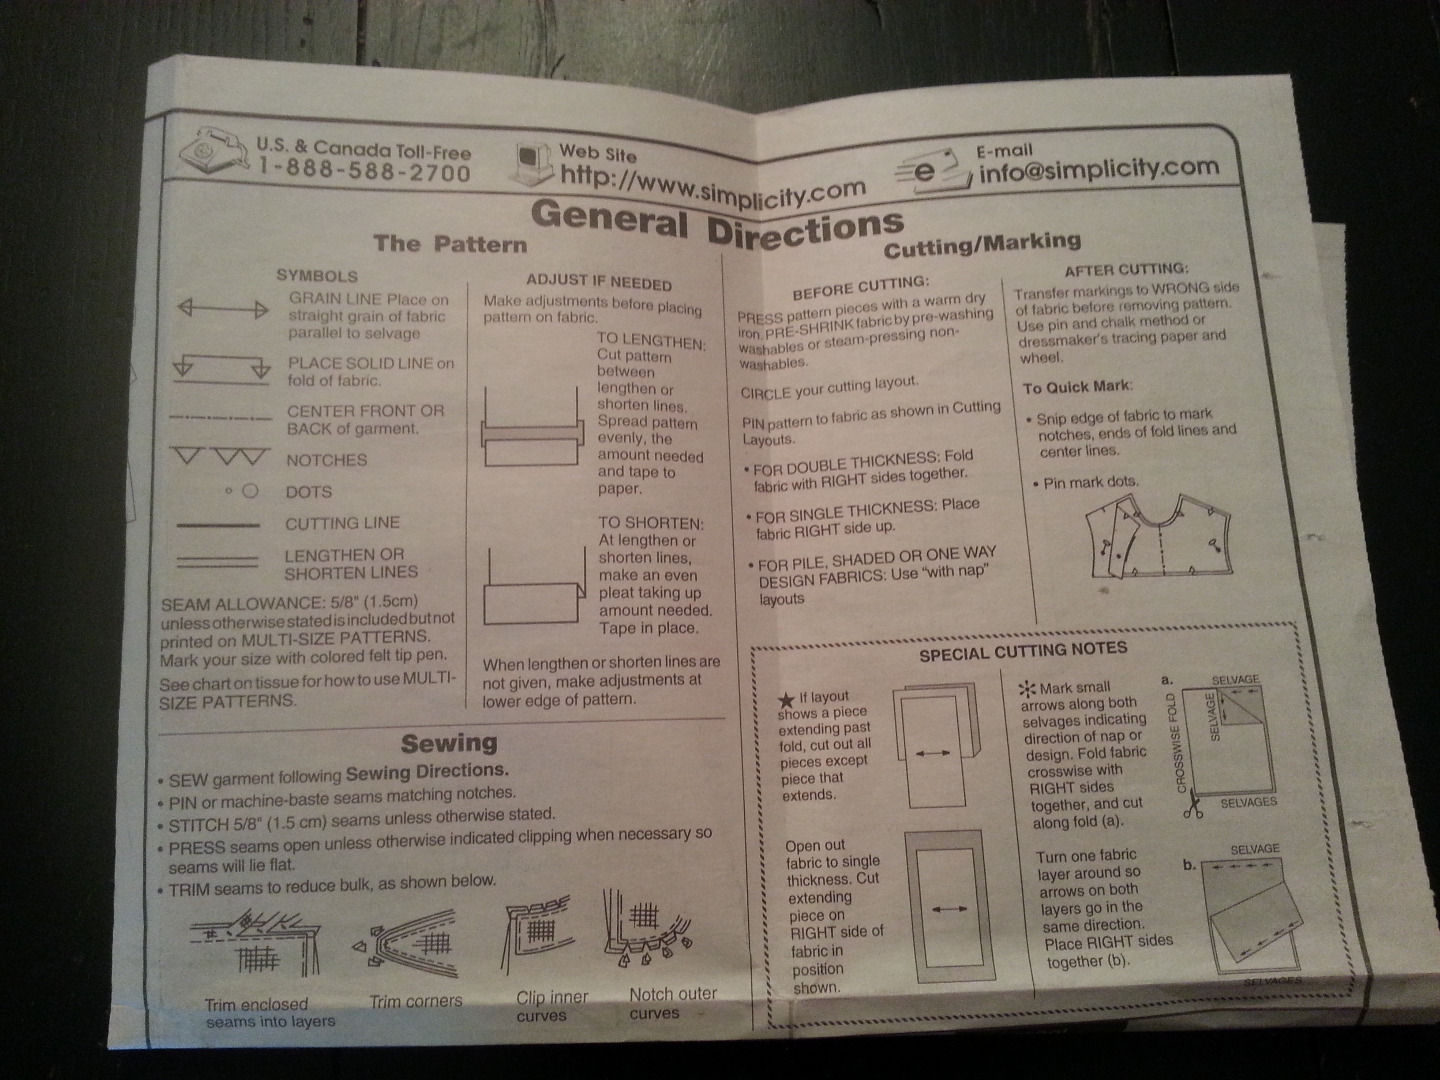 Picture of Why the Heck Do I Care About the General Direction Page?